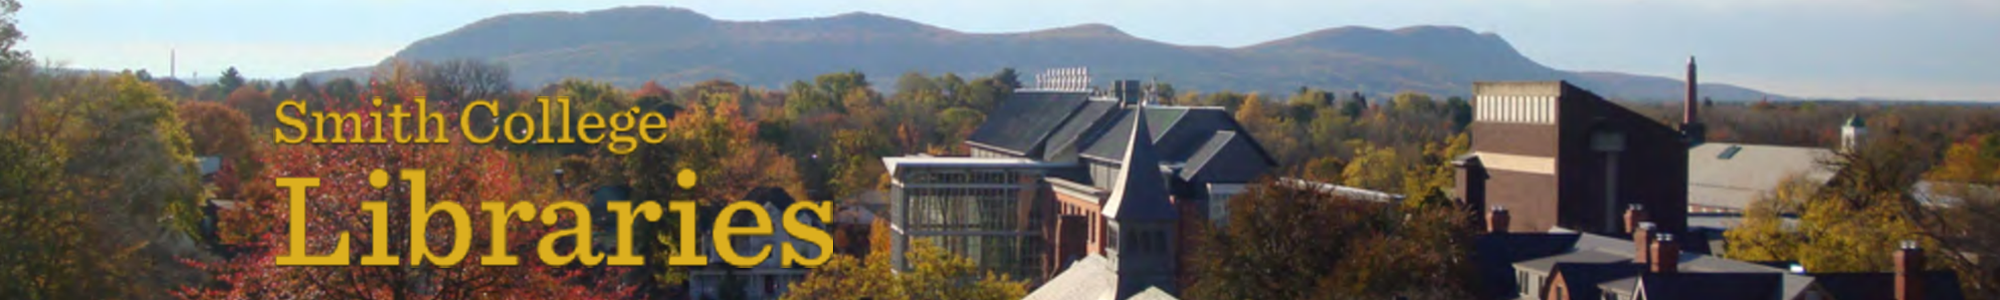 skyline view from Neilson Library at Smith college